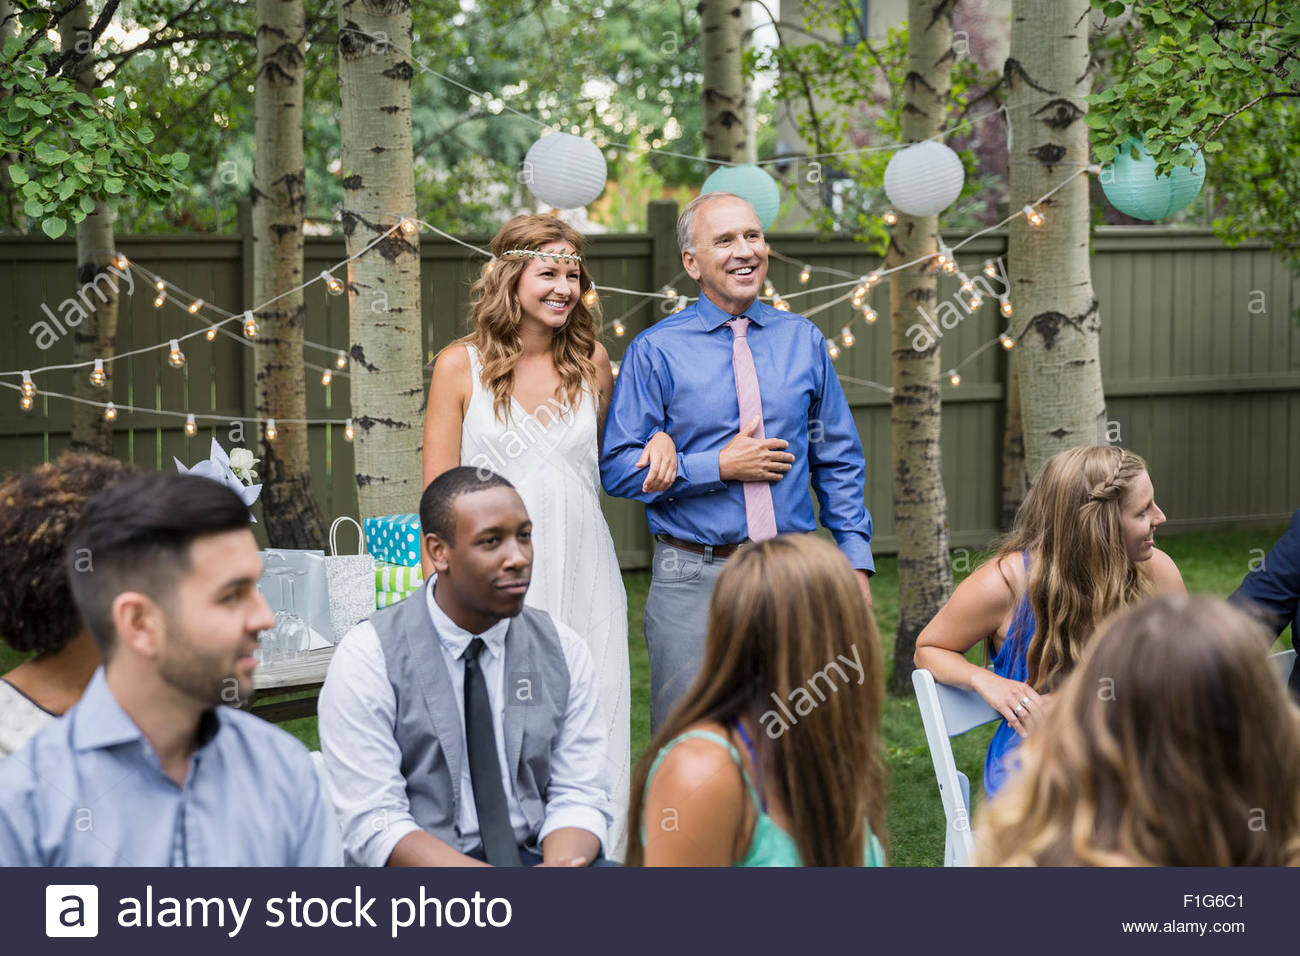 Father and bride ready at backyard wedding - Stock Image